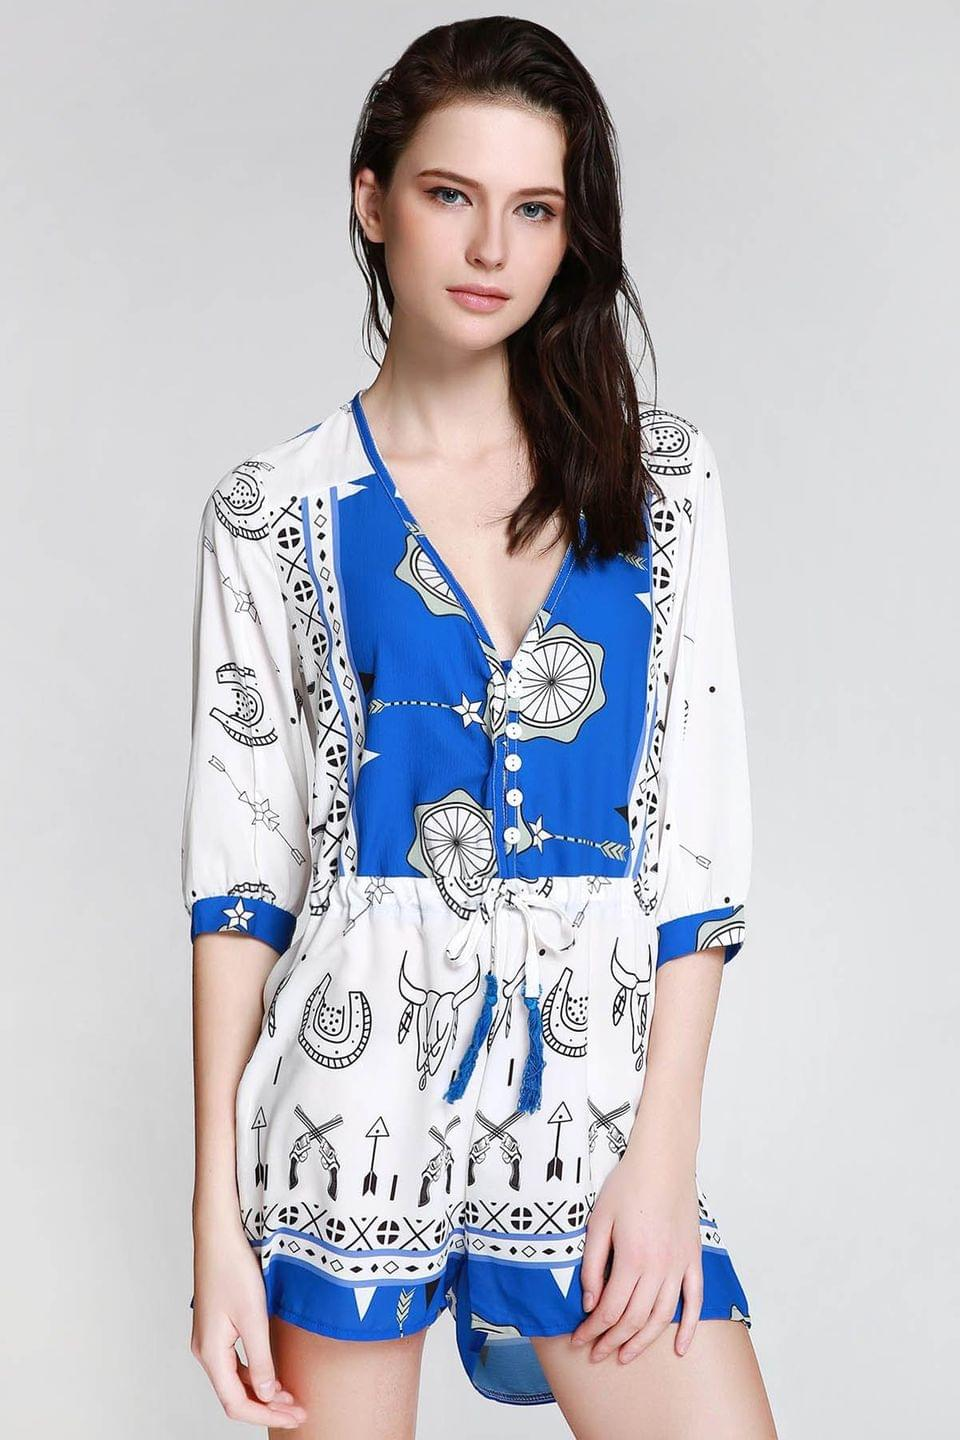 Women's Ethnic Print Plunging Neck 3/4 Sleeve Playsuit - Blue And White M